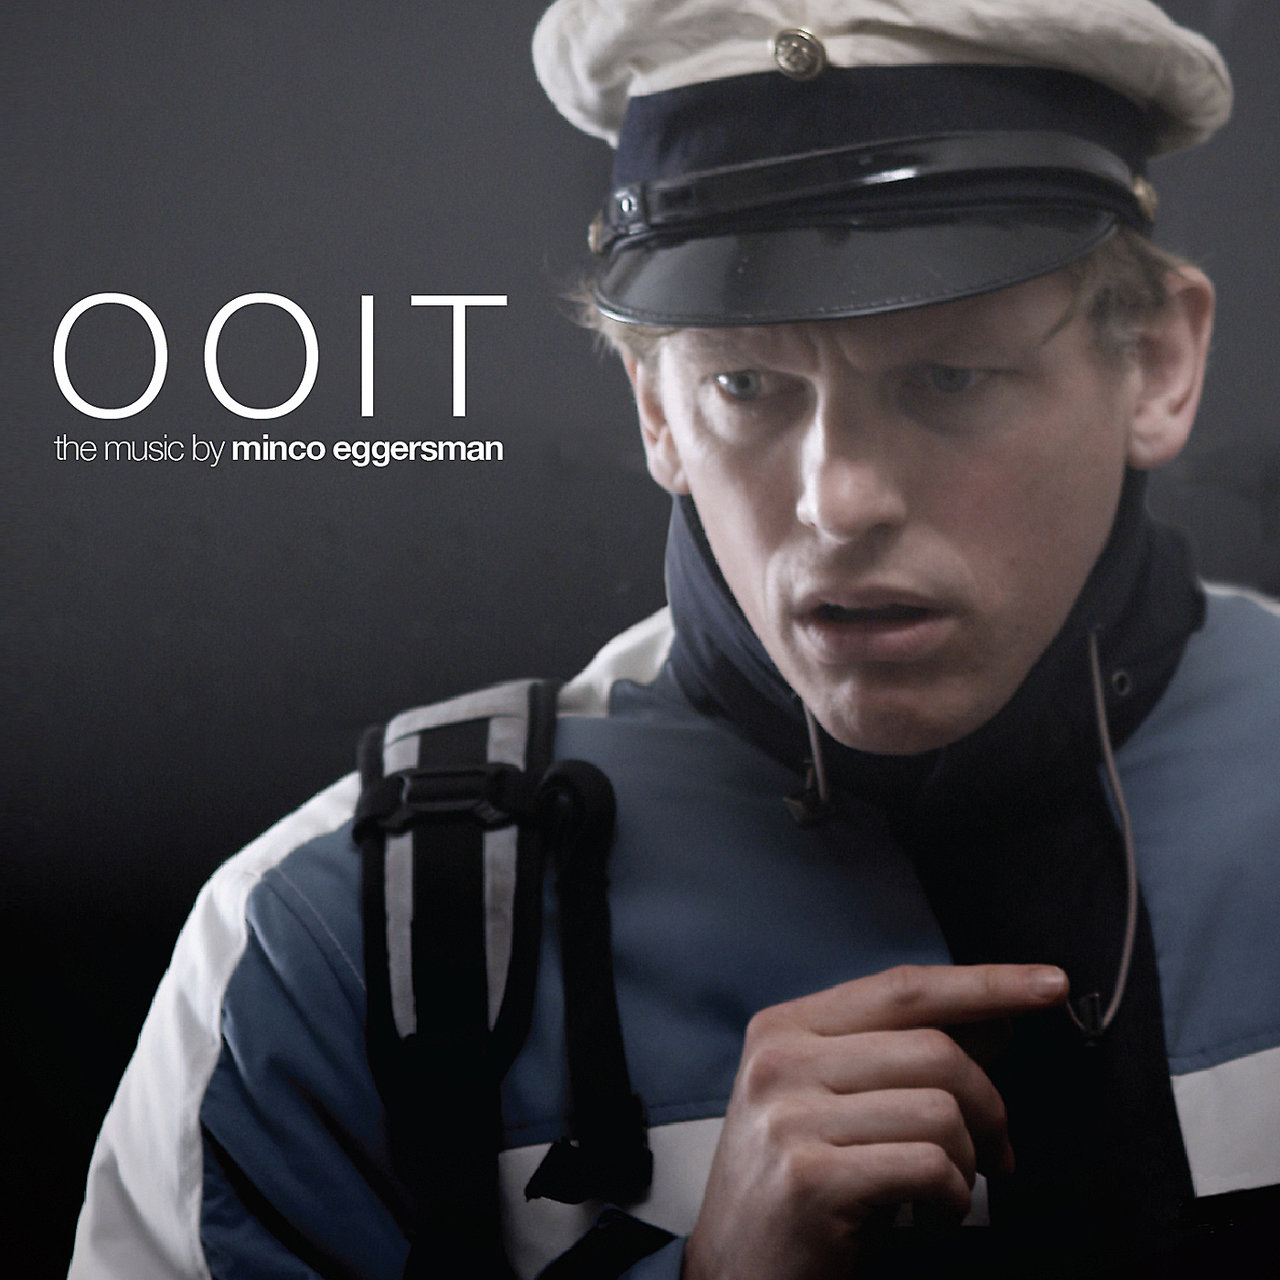 Ooit (Original Motion Picture Soundtrack)